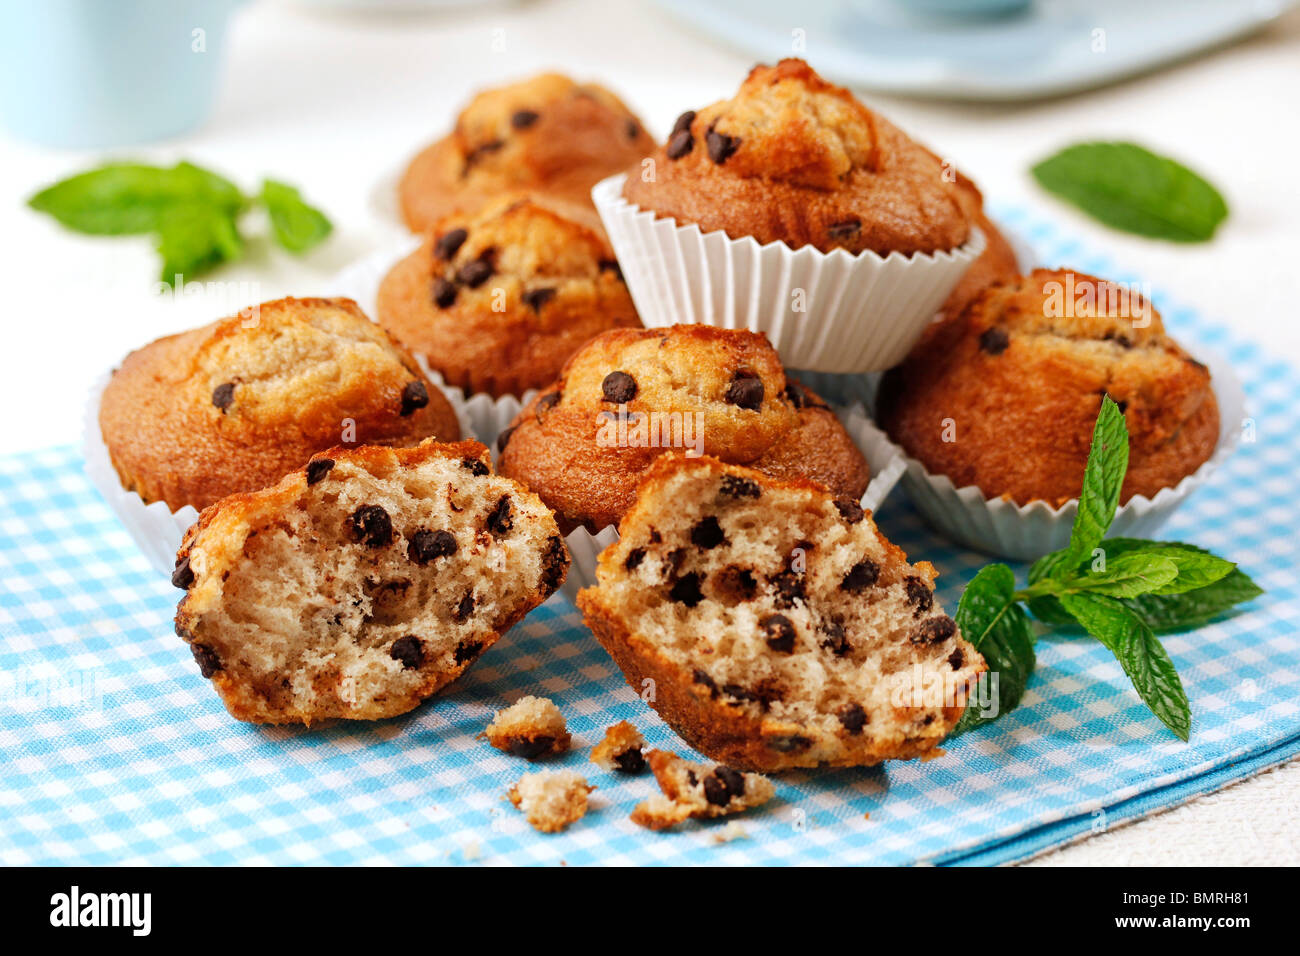 Chocolate muffins. Recipe available. - Stock Image